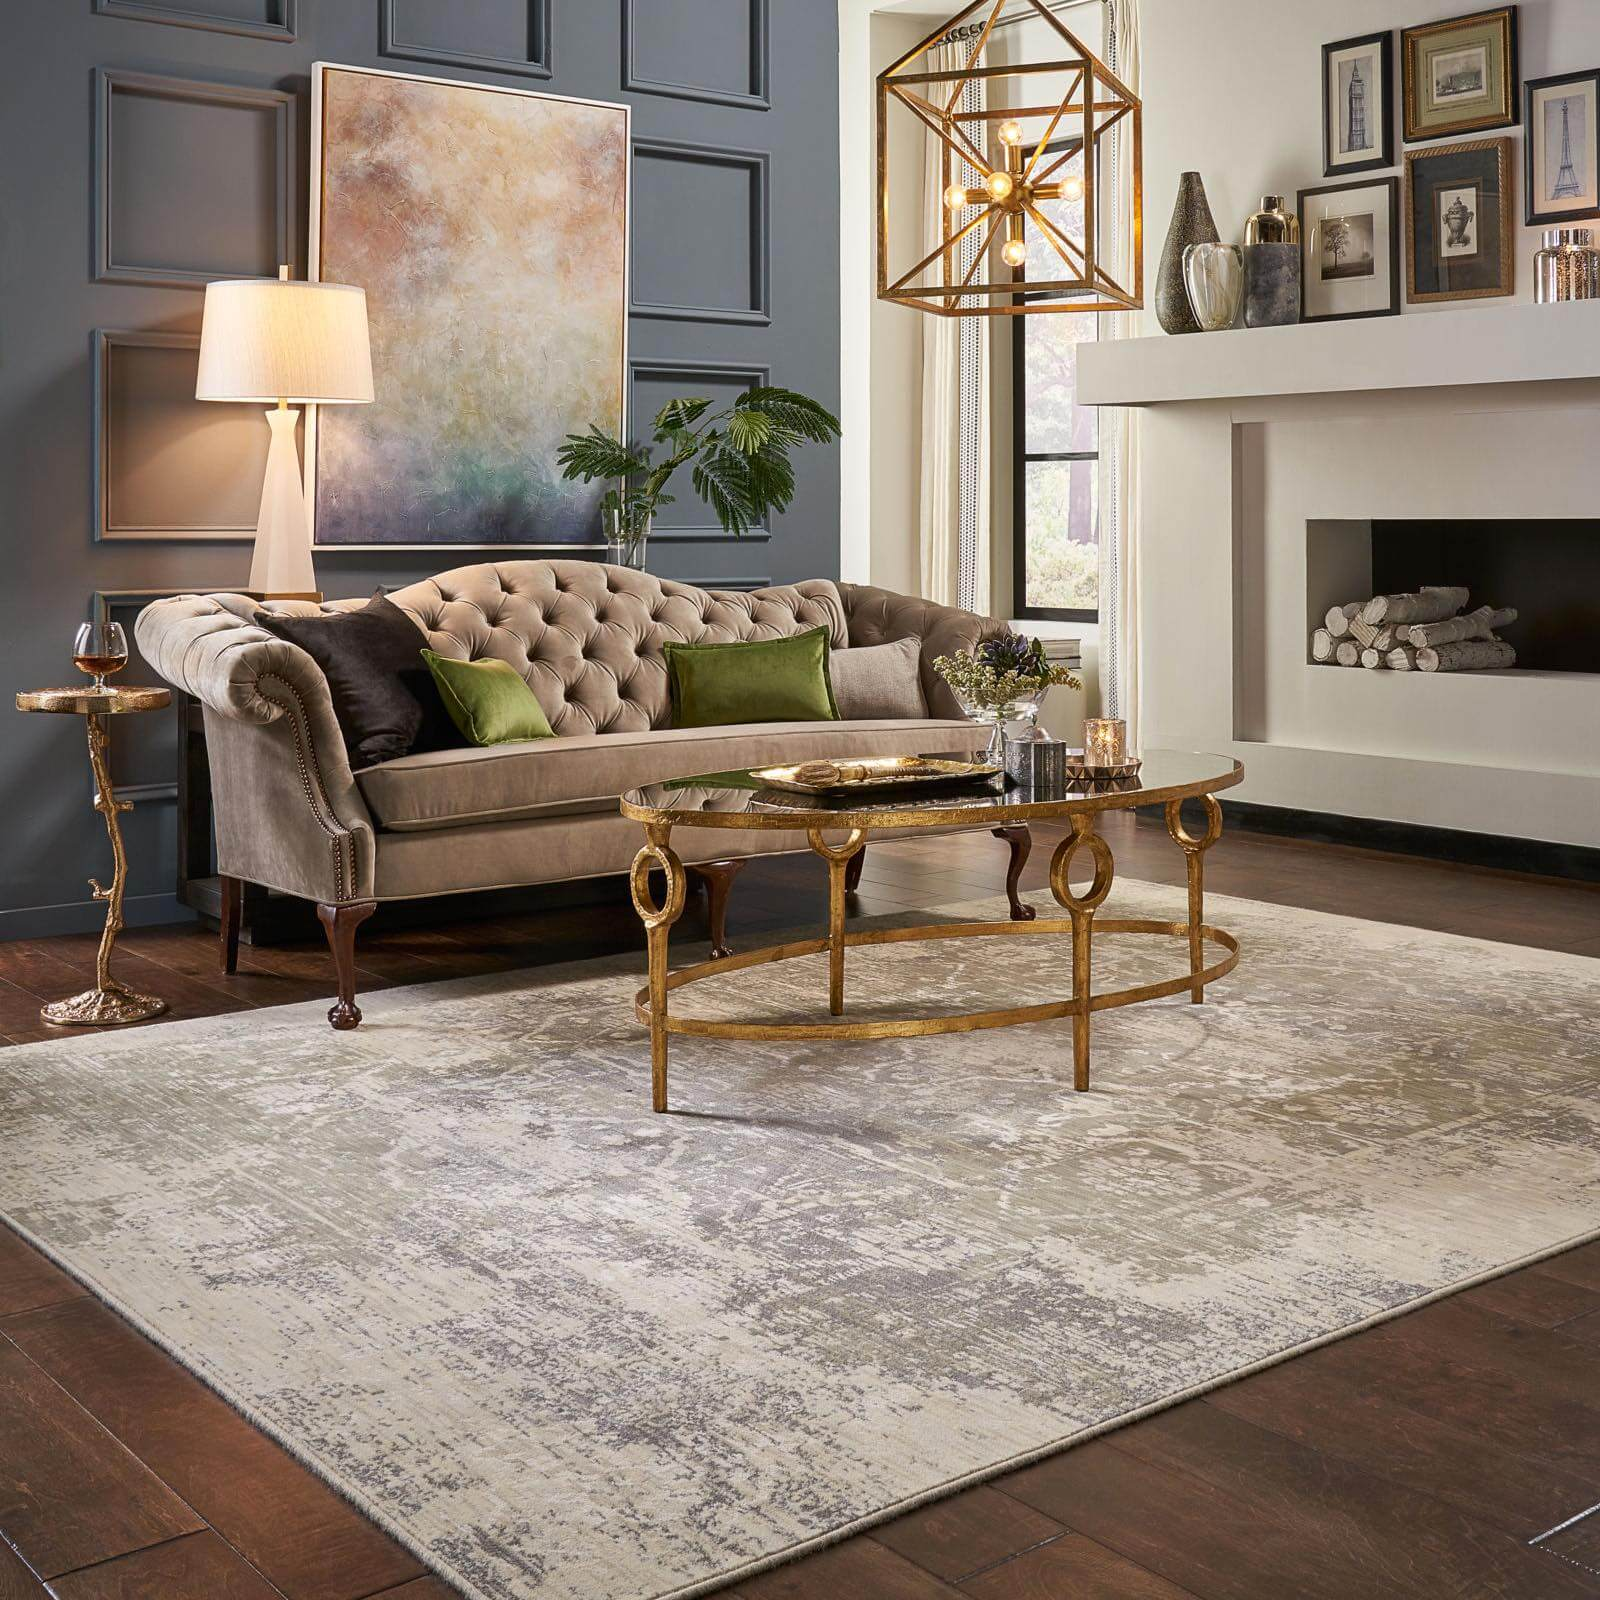 Living room view | The Carpet Stop